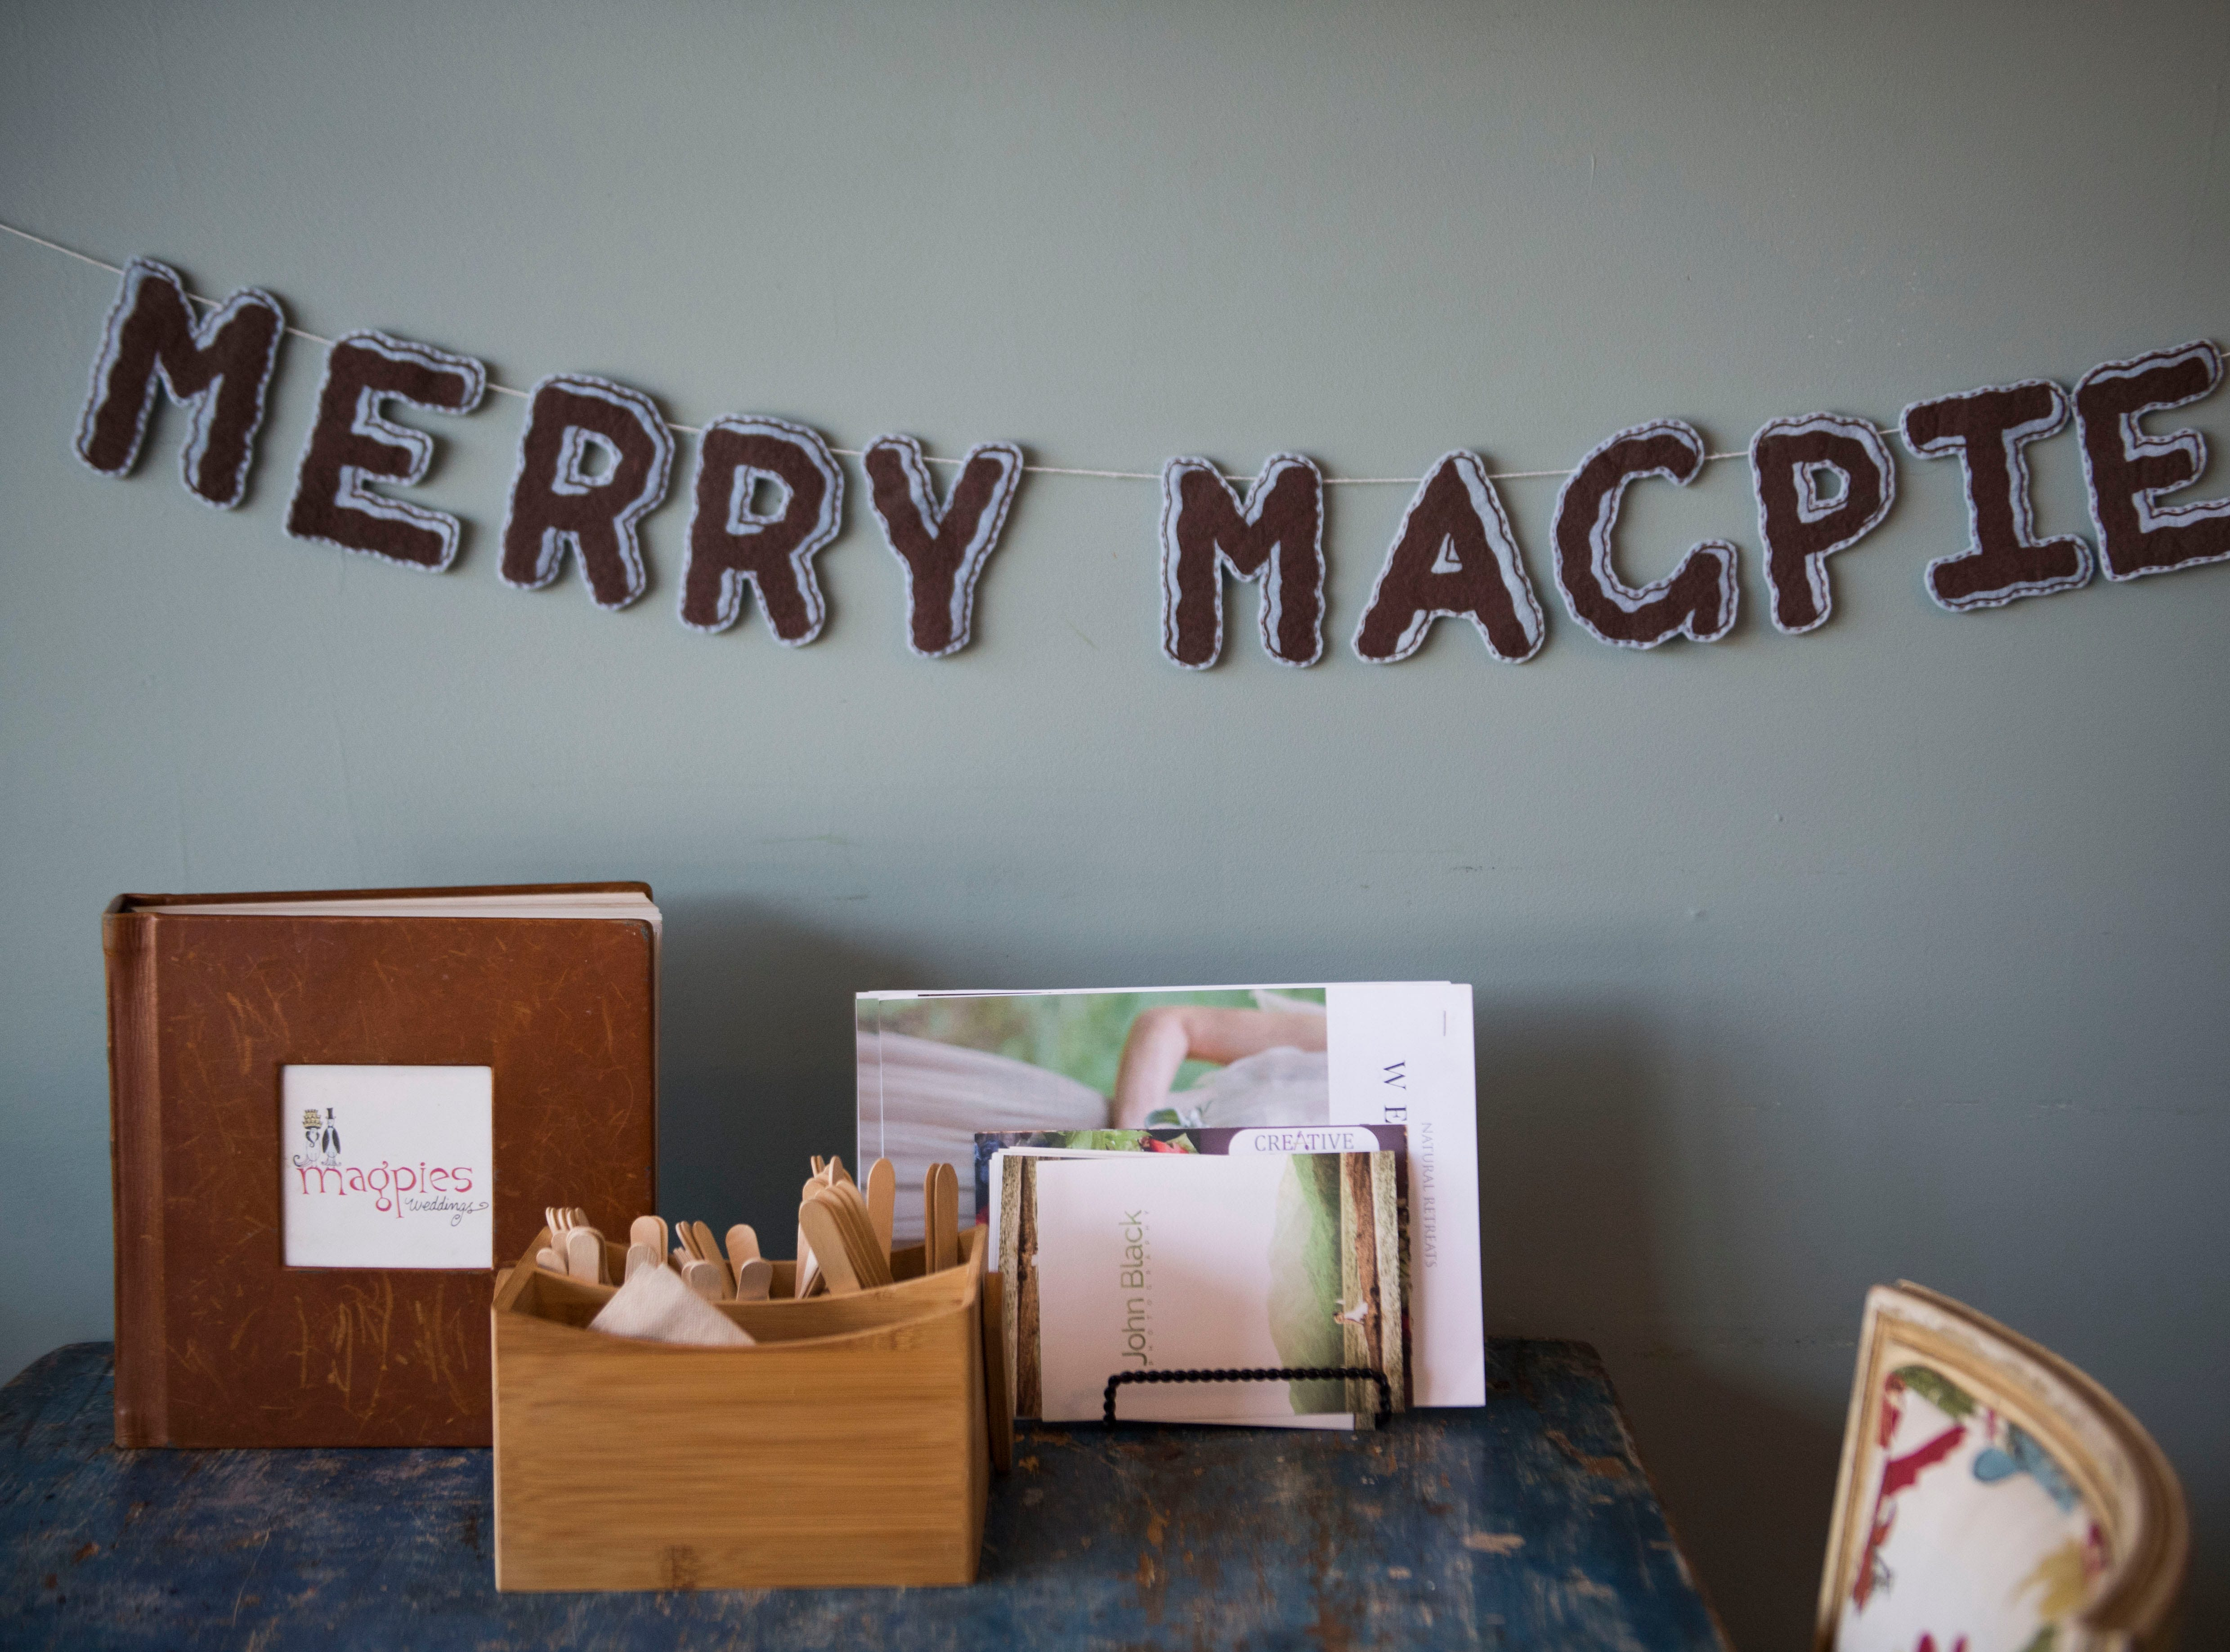 Decor hangs in Magpies Bakery, located on North Central Street Tuesday, Aug. 28, 2018. Elizabeth Smith bought the bakery from her aunt, Peg Hambright, in January.